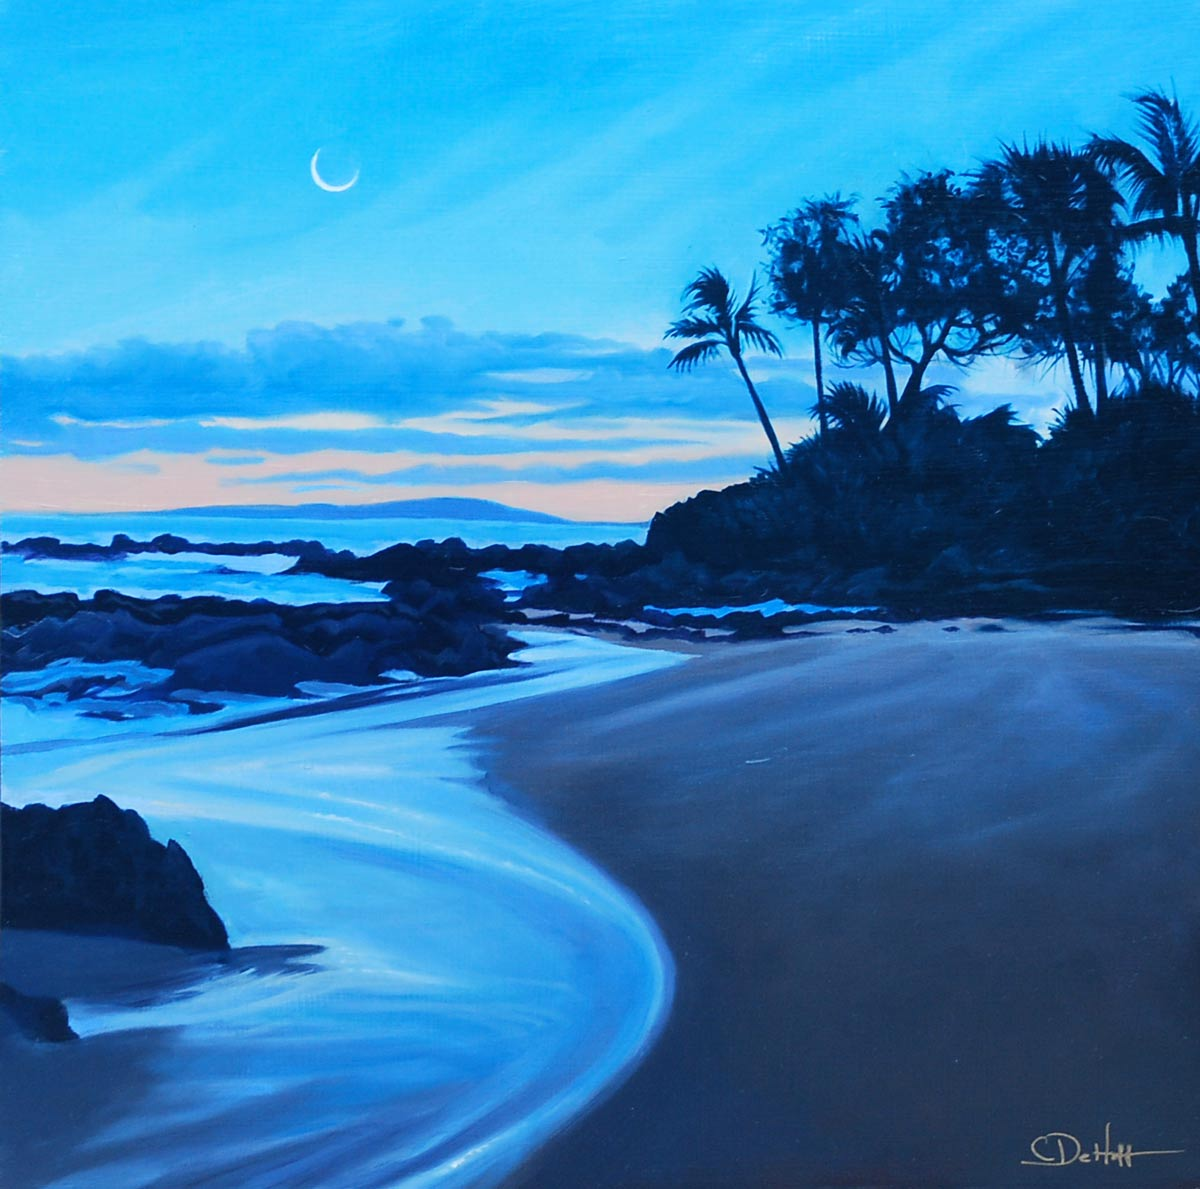 christina-dehoff-new-moon-makena